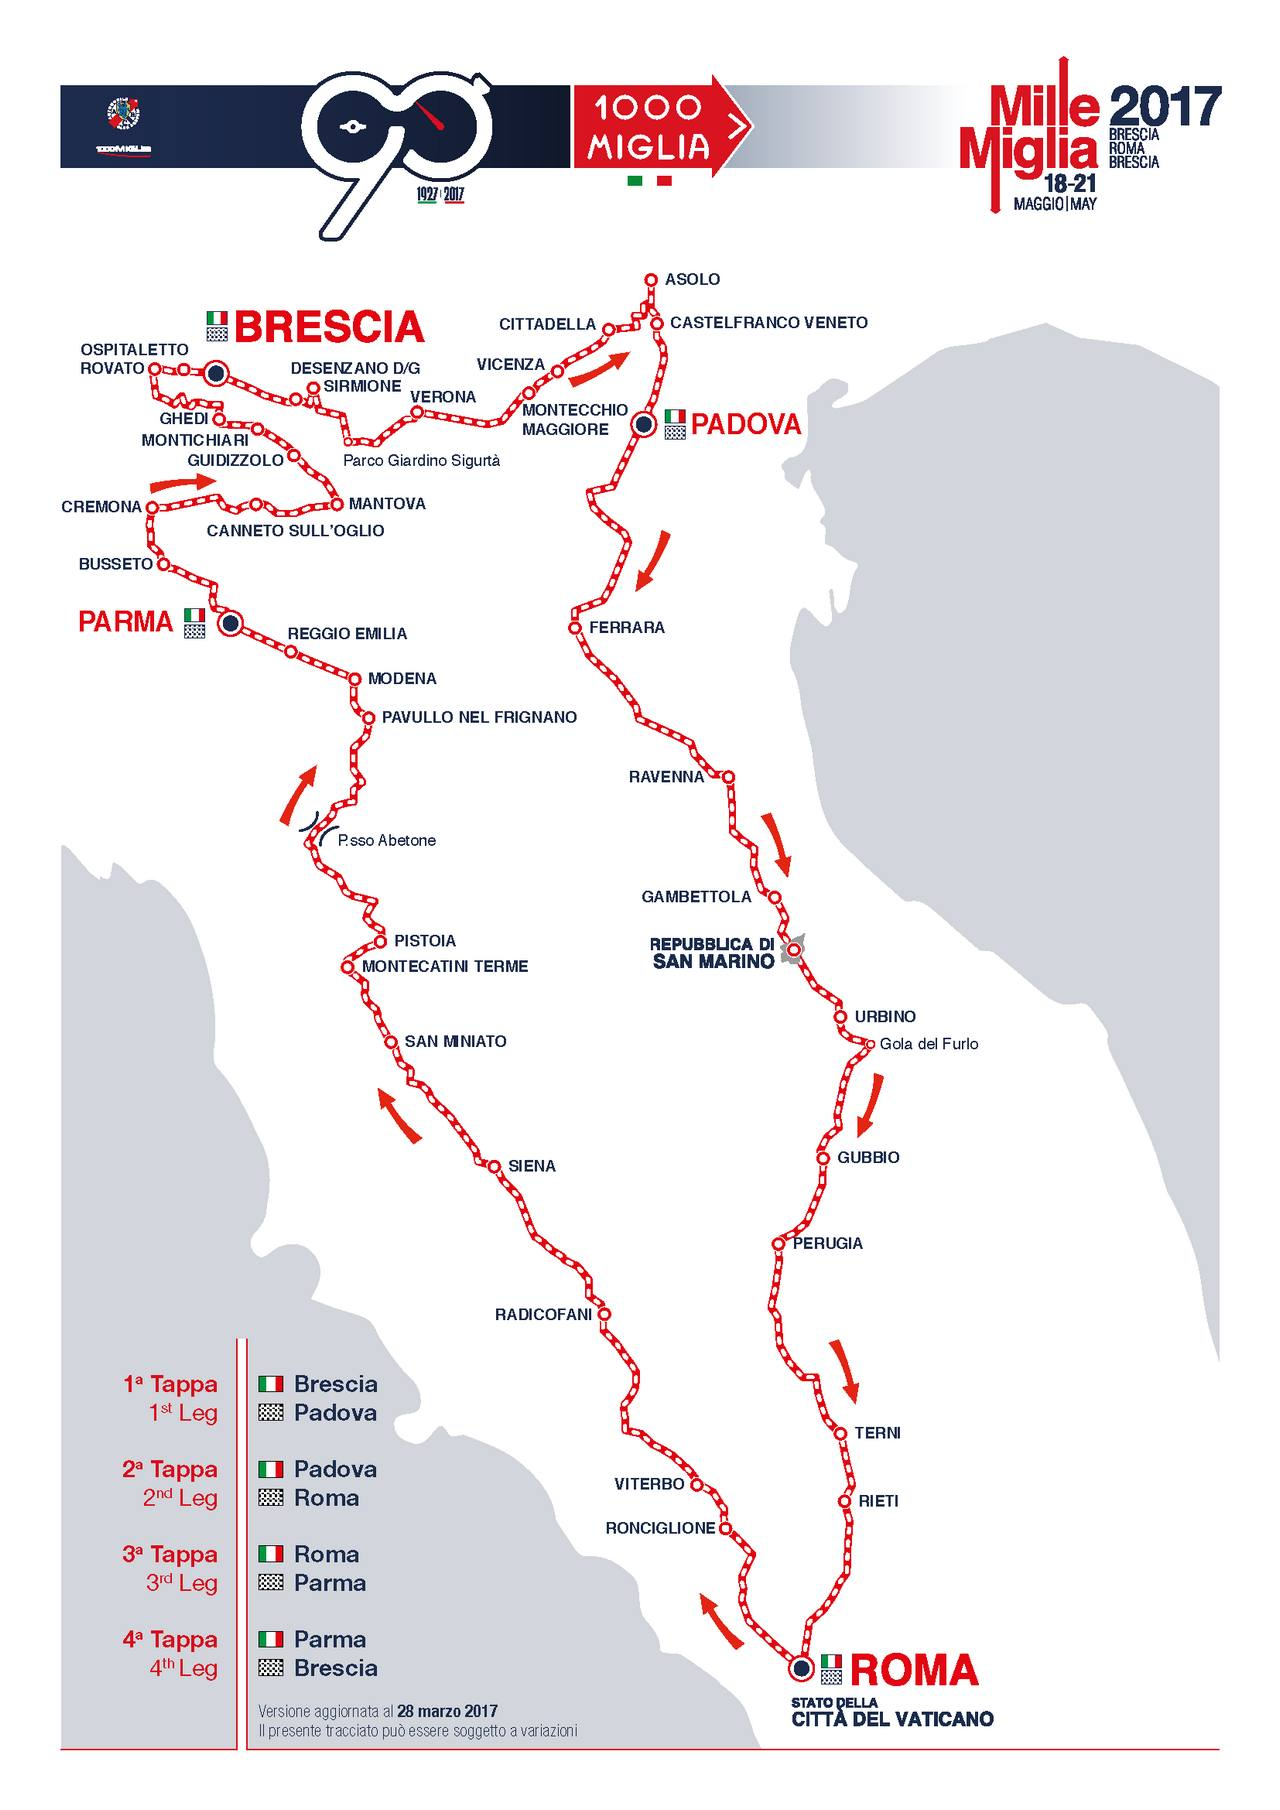 mille-miglia-2017-road-map-percorso-logo-trade-mark_0-1002